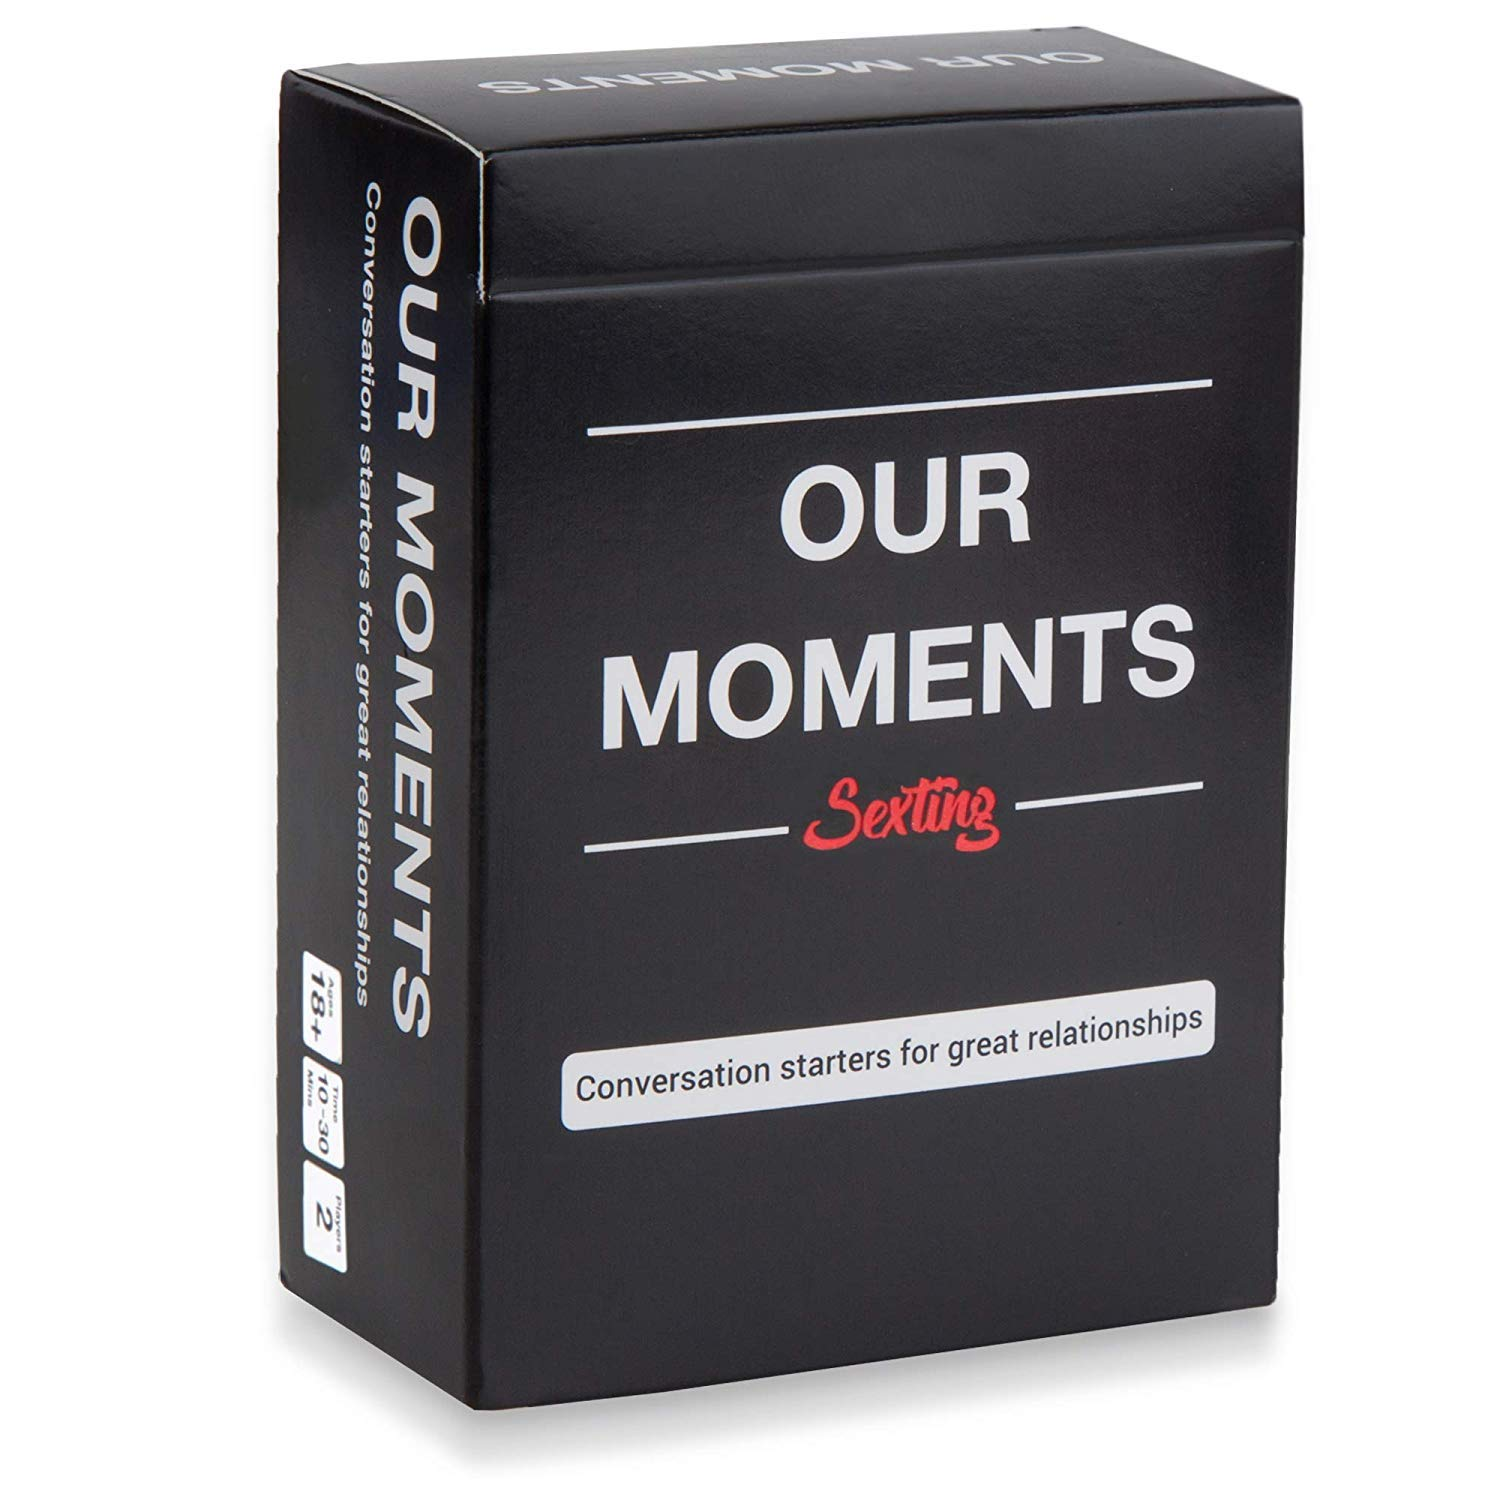 OUR MOMENTS Sexting: 100 Messages to Text to Your Partner to Spice Up Your Relationship with Fun Conversation Cards Game for Couples